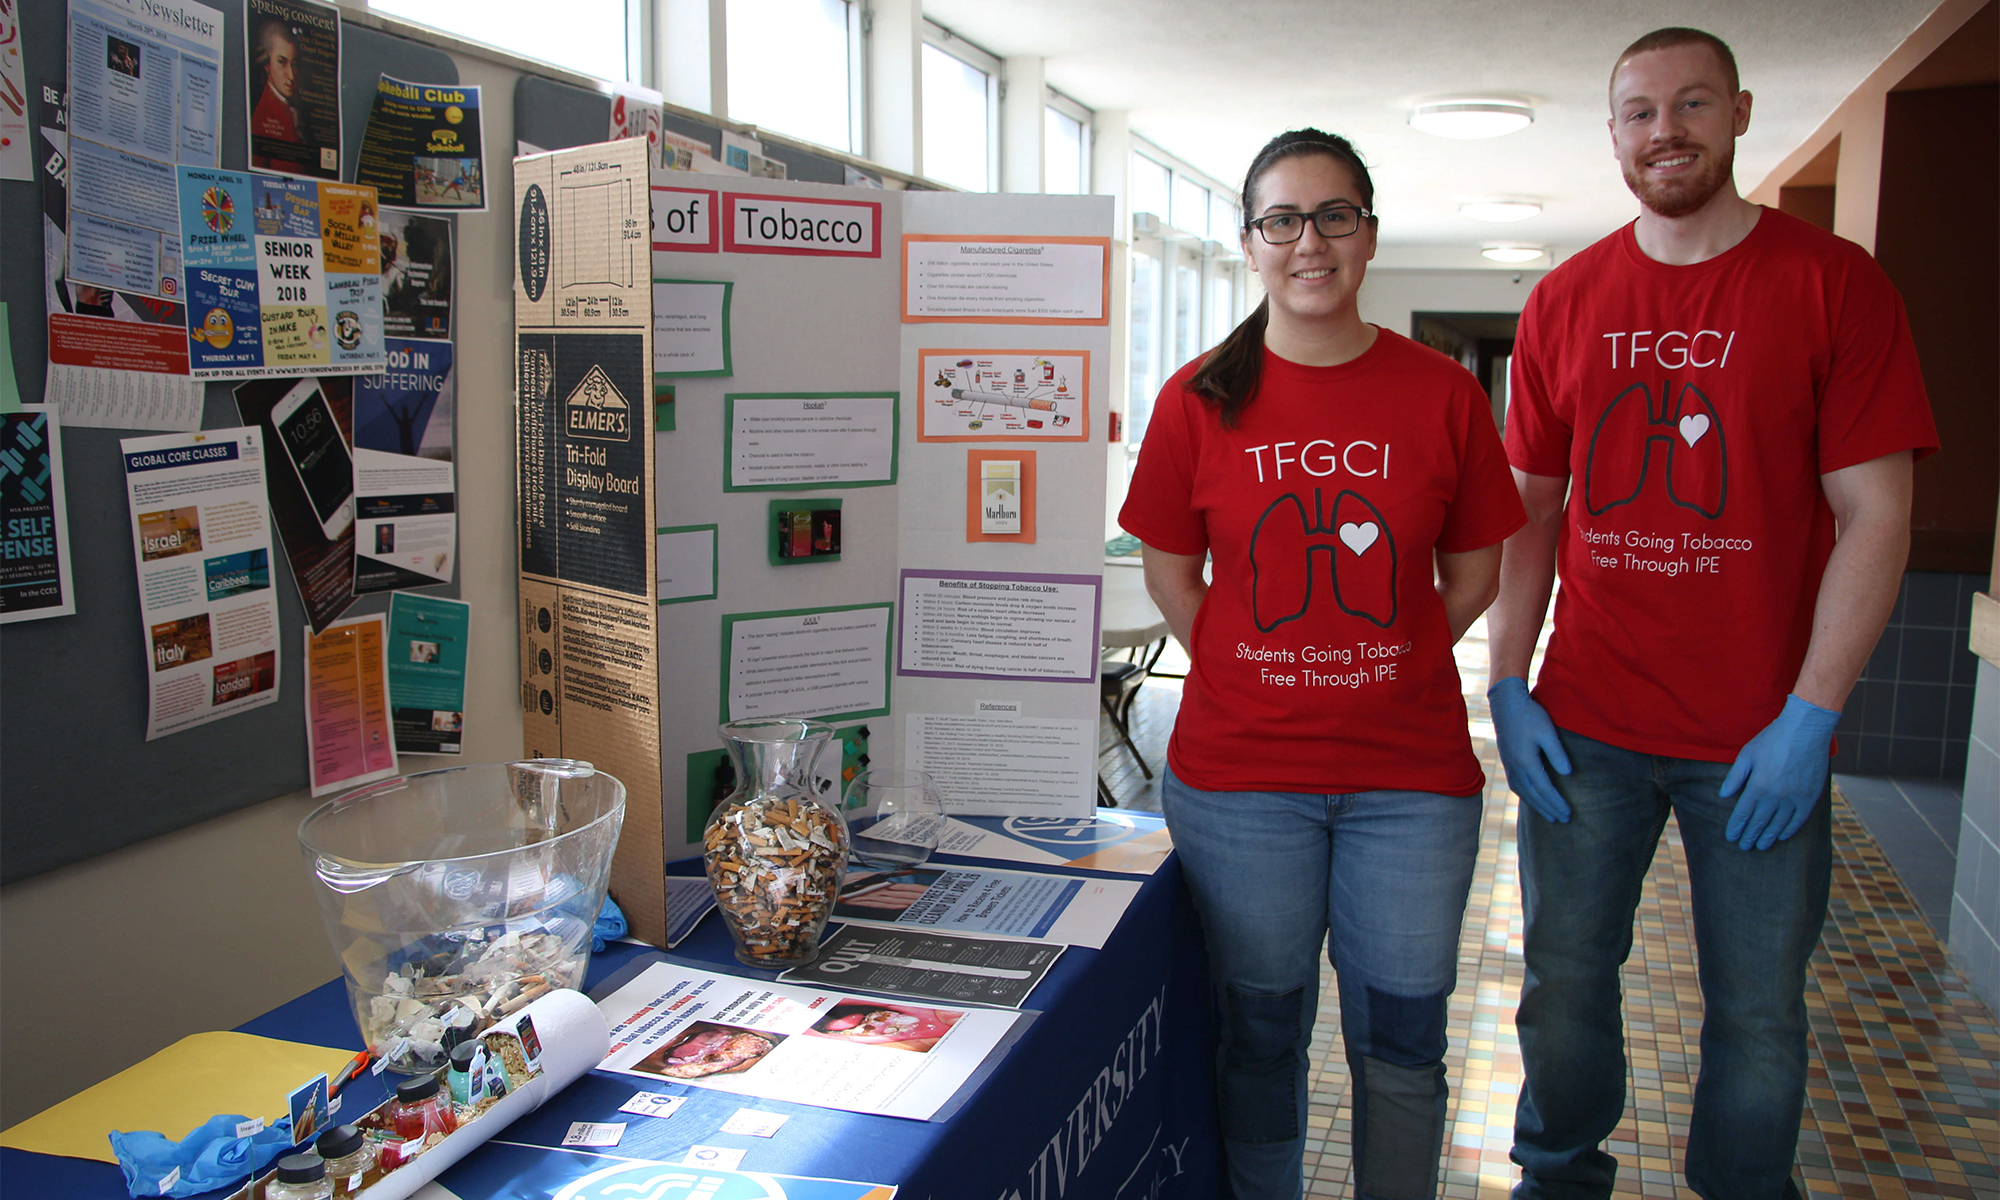 Alex Restaino and Mike Van Oever were two of the CUW students involved in a campus wide tobacco cessation effort on Thursday, April 26.